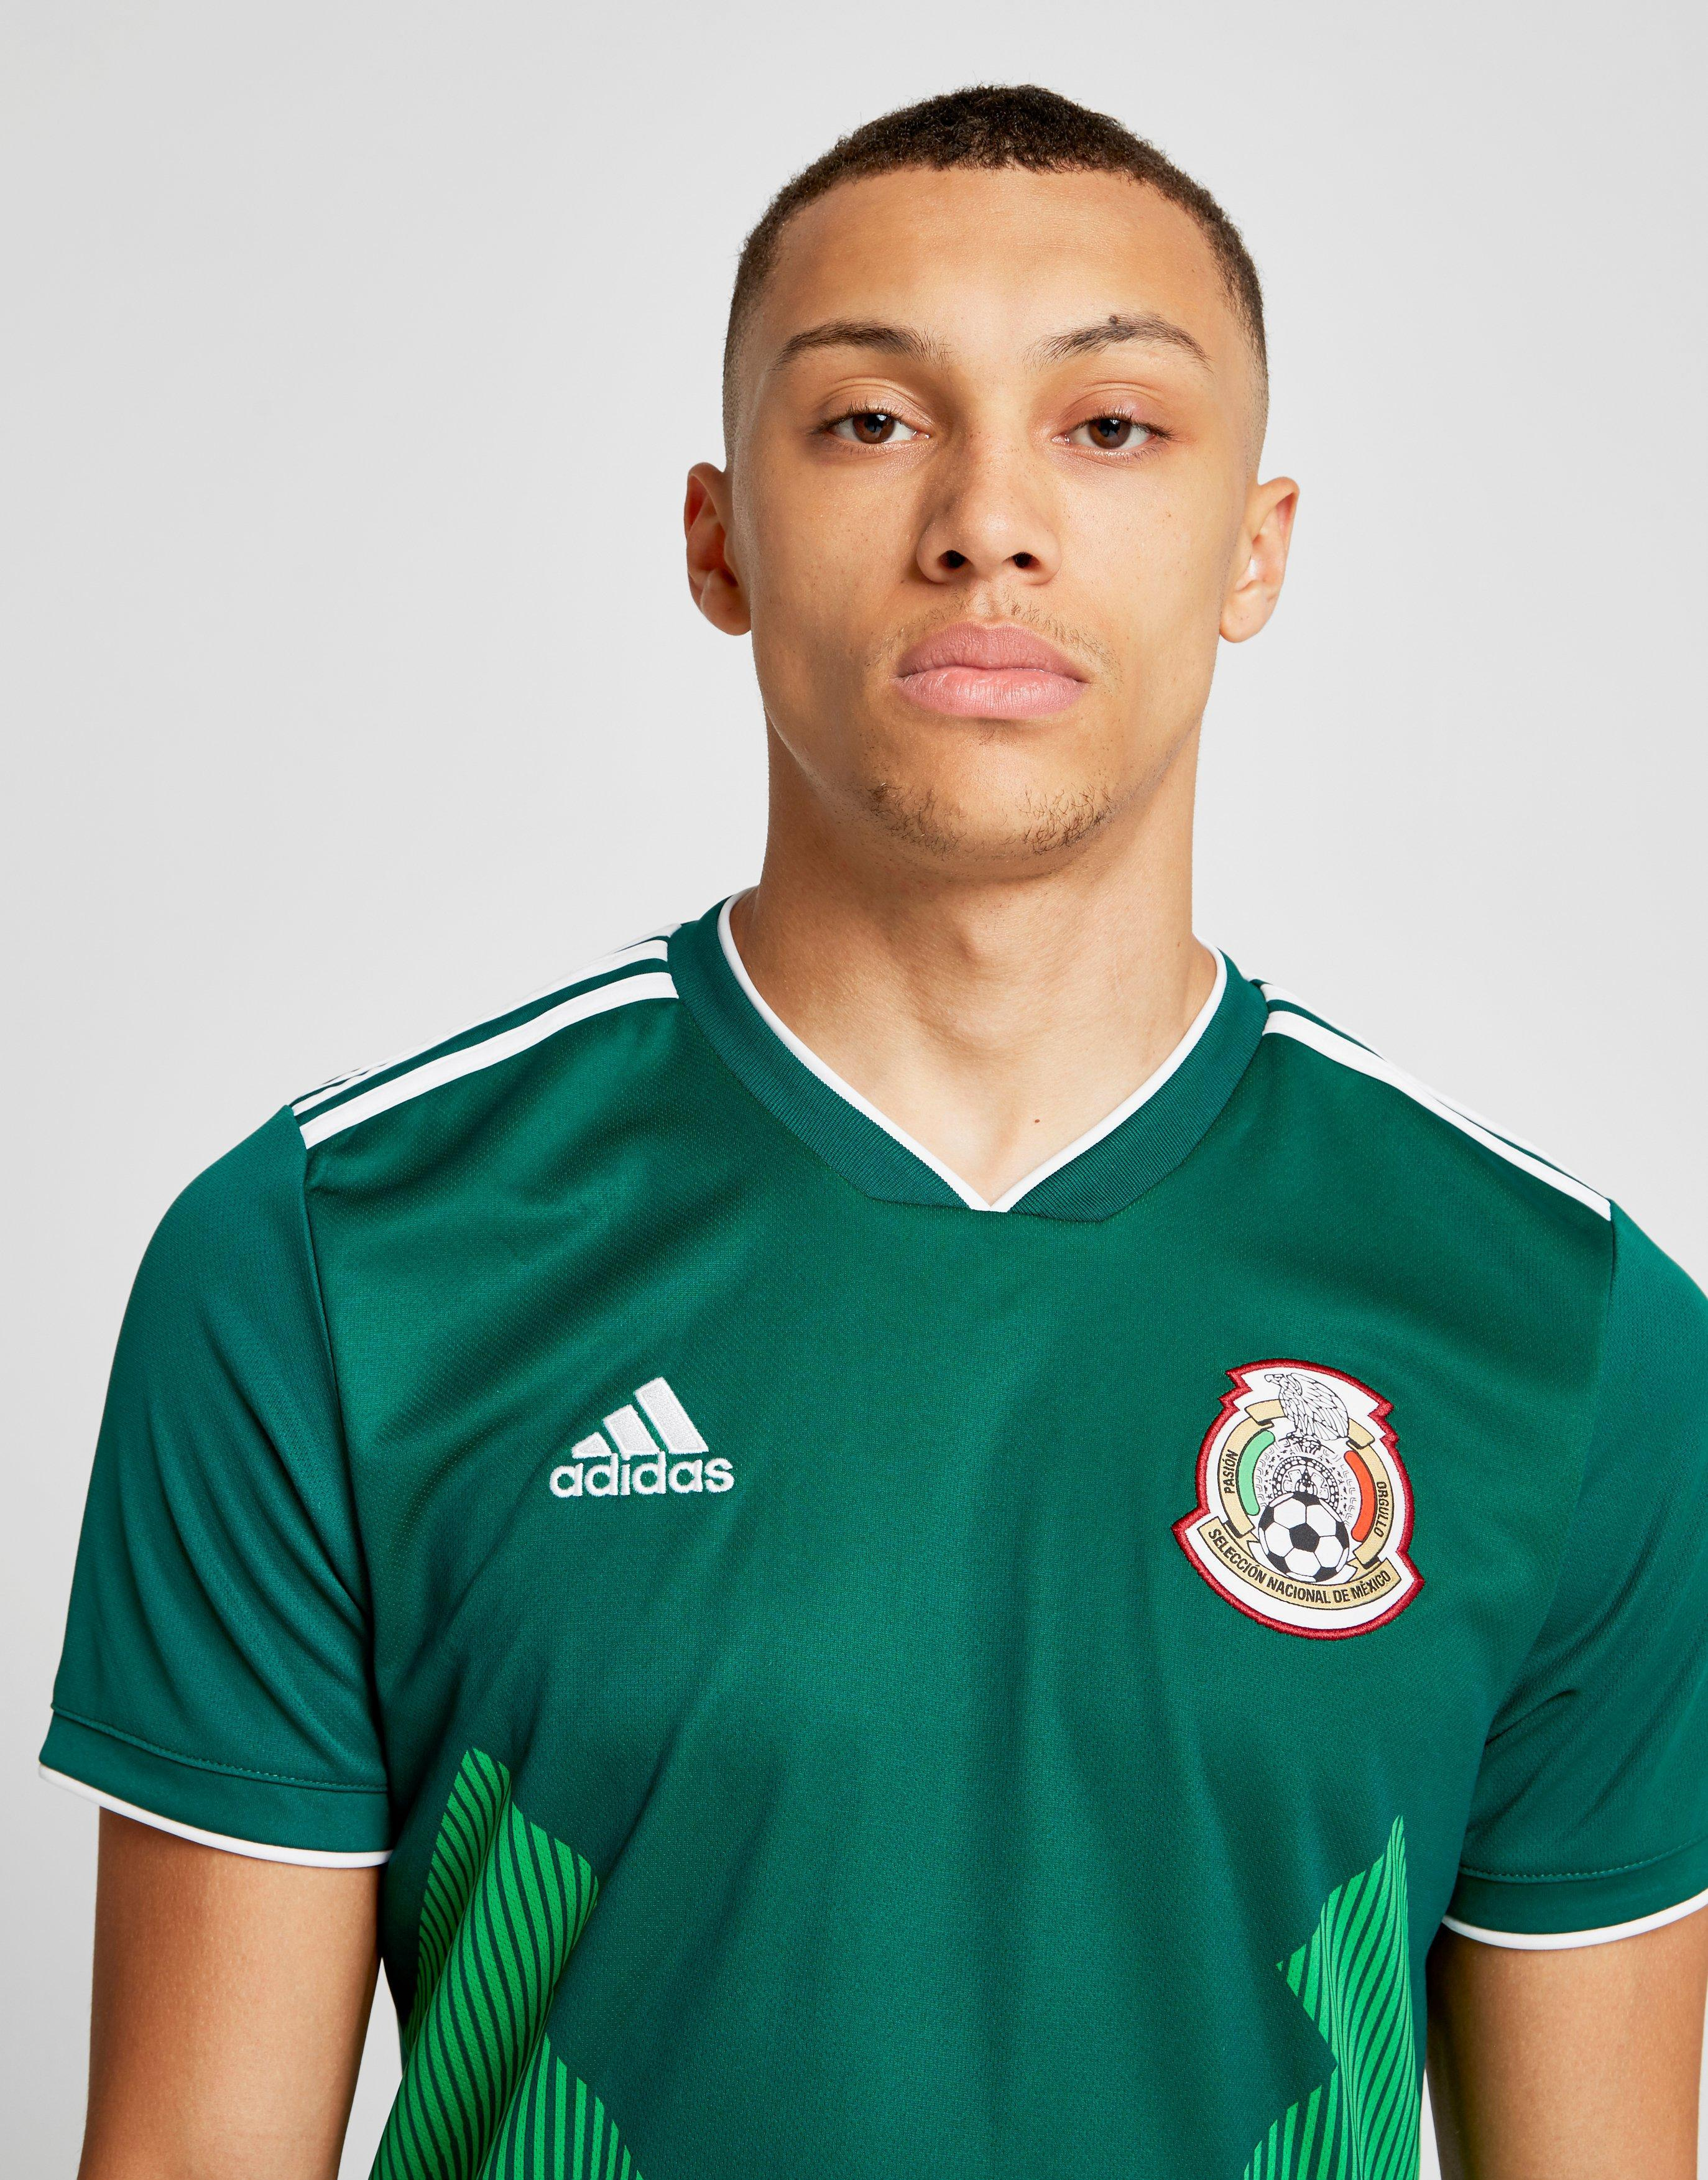 e6317fdb1 adidas Mexico 2018 Home Shirt in Green for Men - Lyst